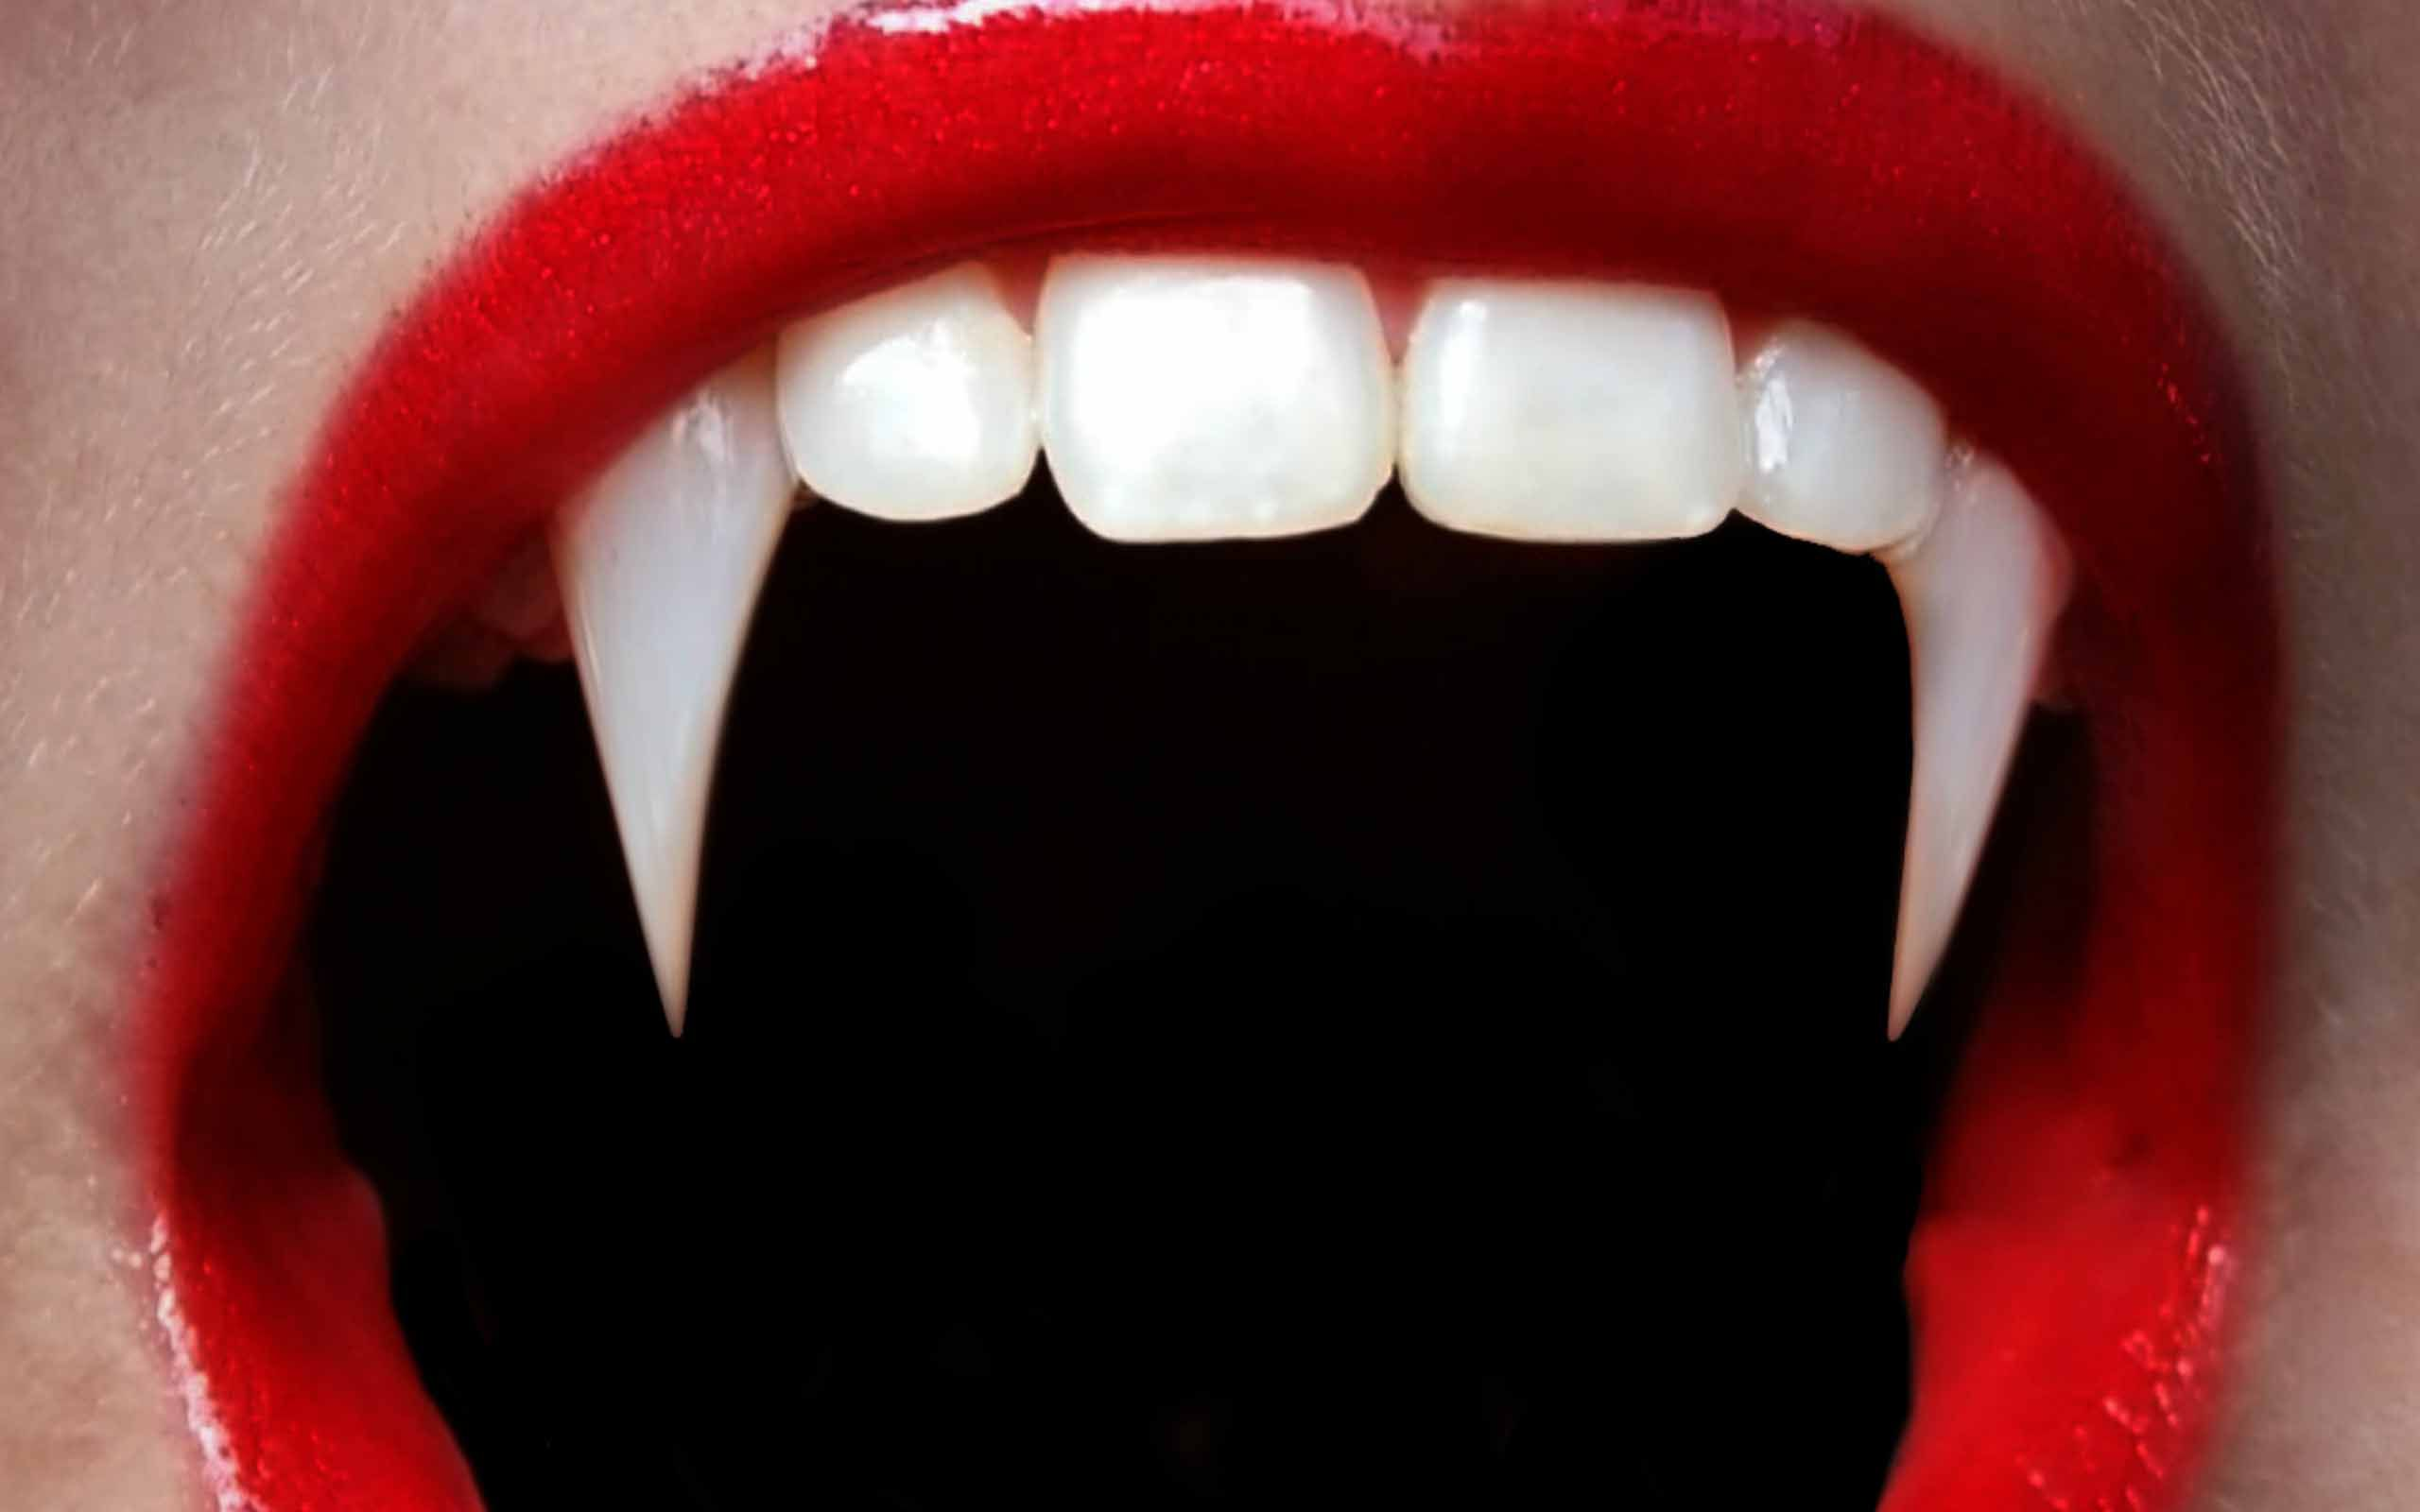 Vampire Love Hd Wallpaper : Vampire real dangerous teeth hd wallpapers Wallpapers Wide Free Adorable Wallpapers ...